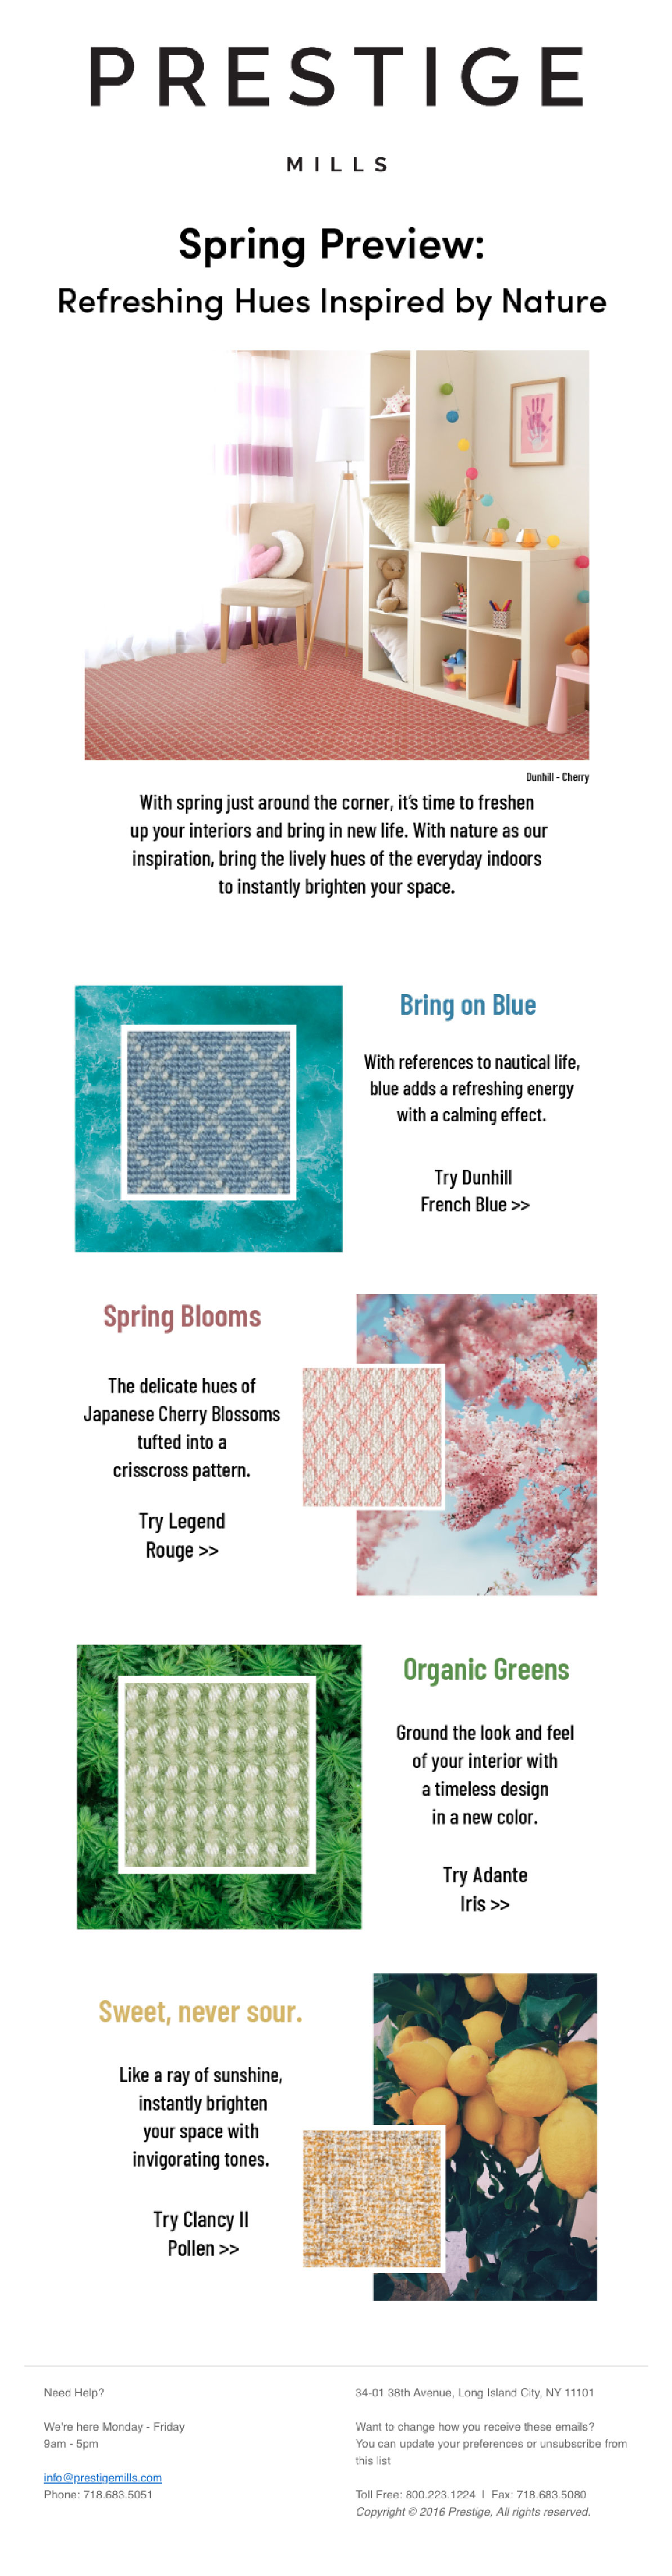 Prestige Mills - The Spring Color Palette